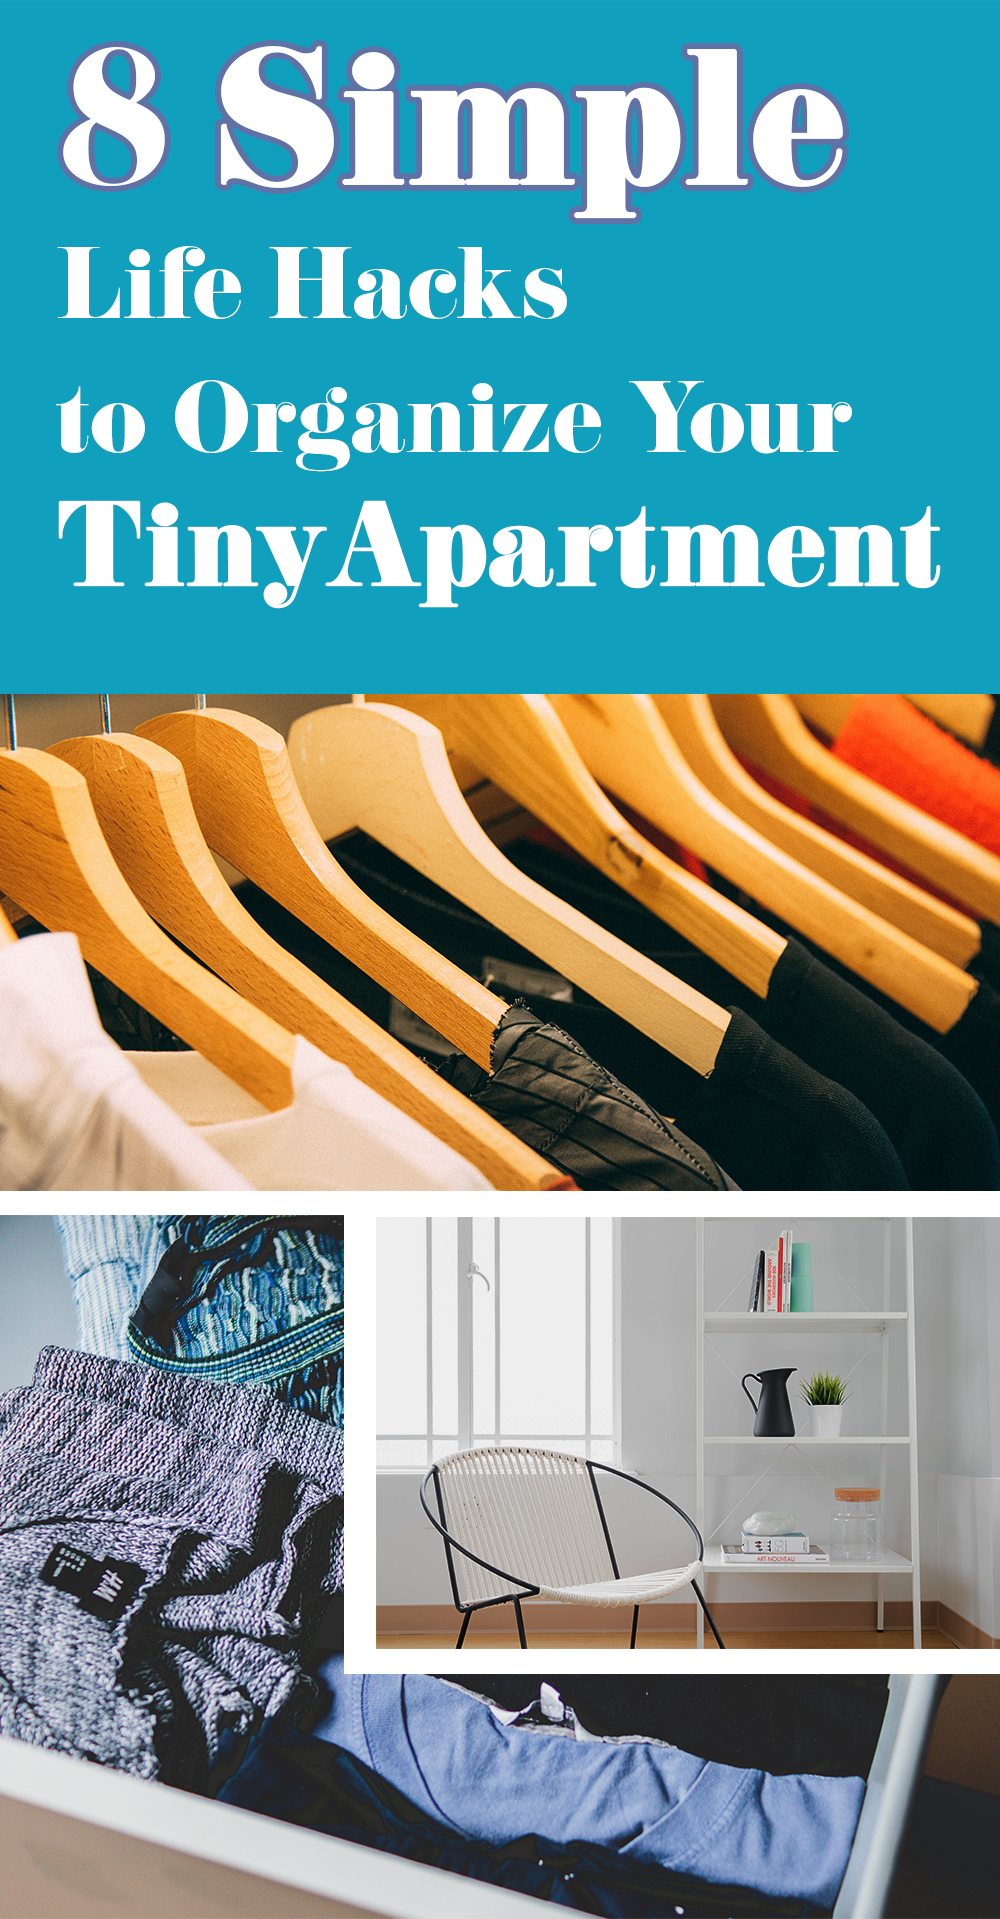 8 Simple Life Hacks to Organize Your Tiny Apartment ...